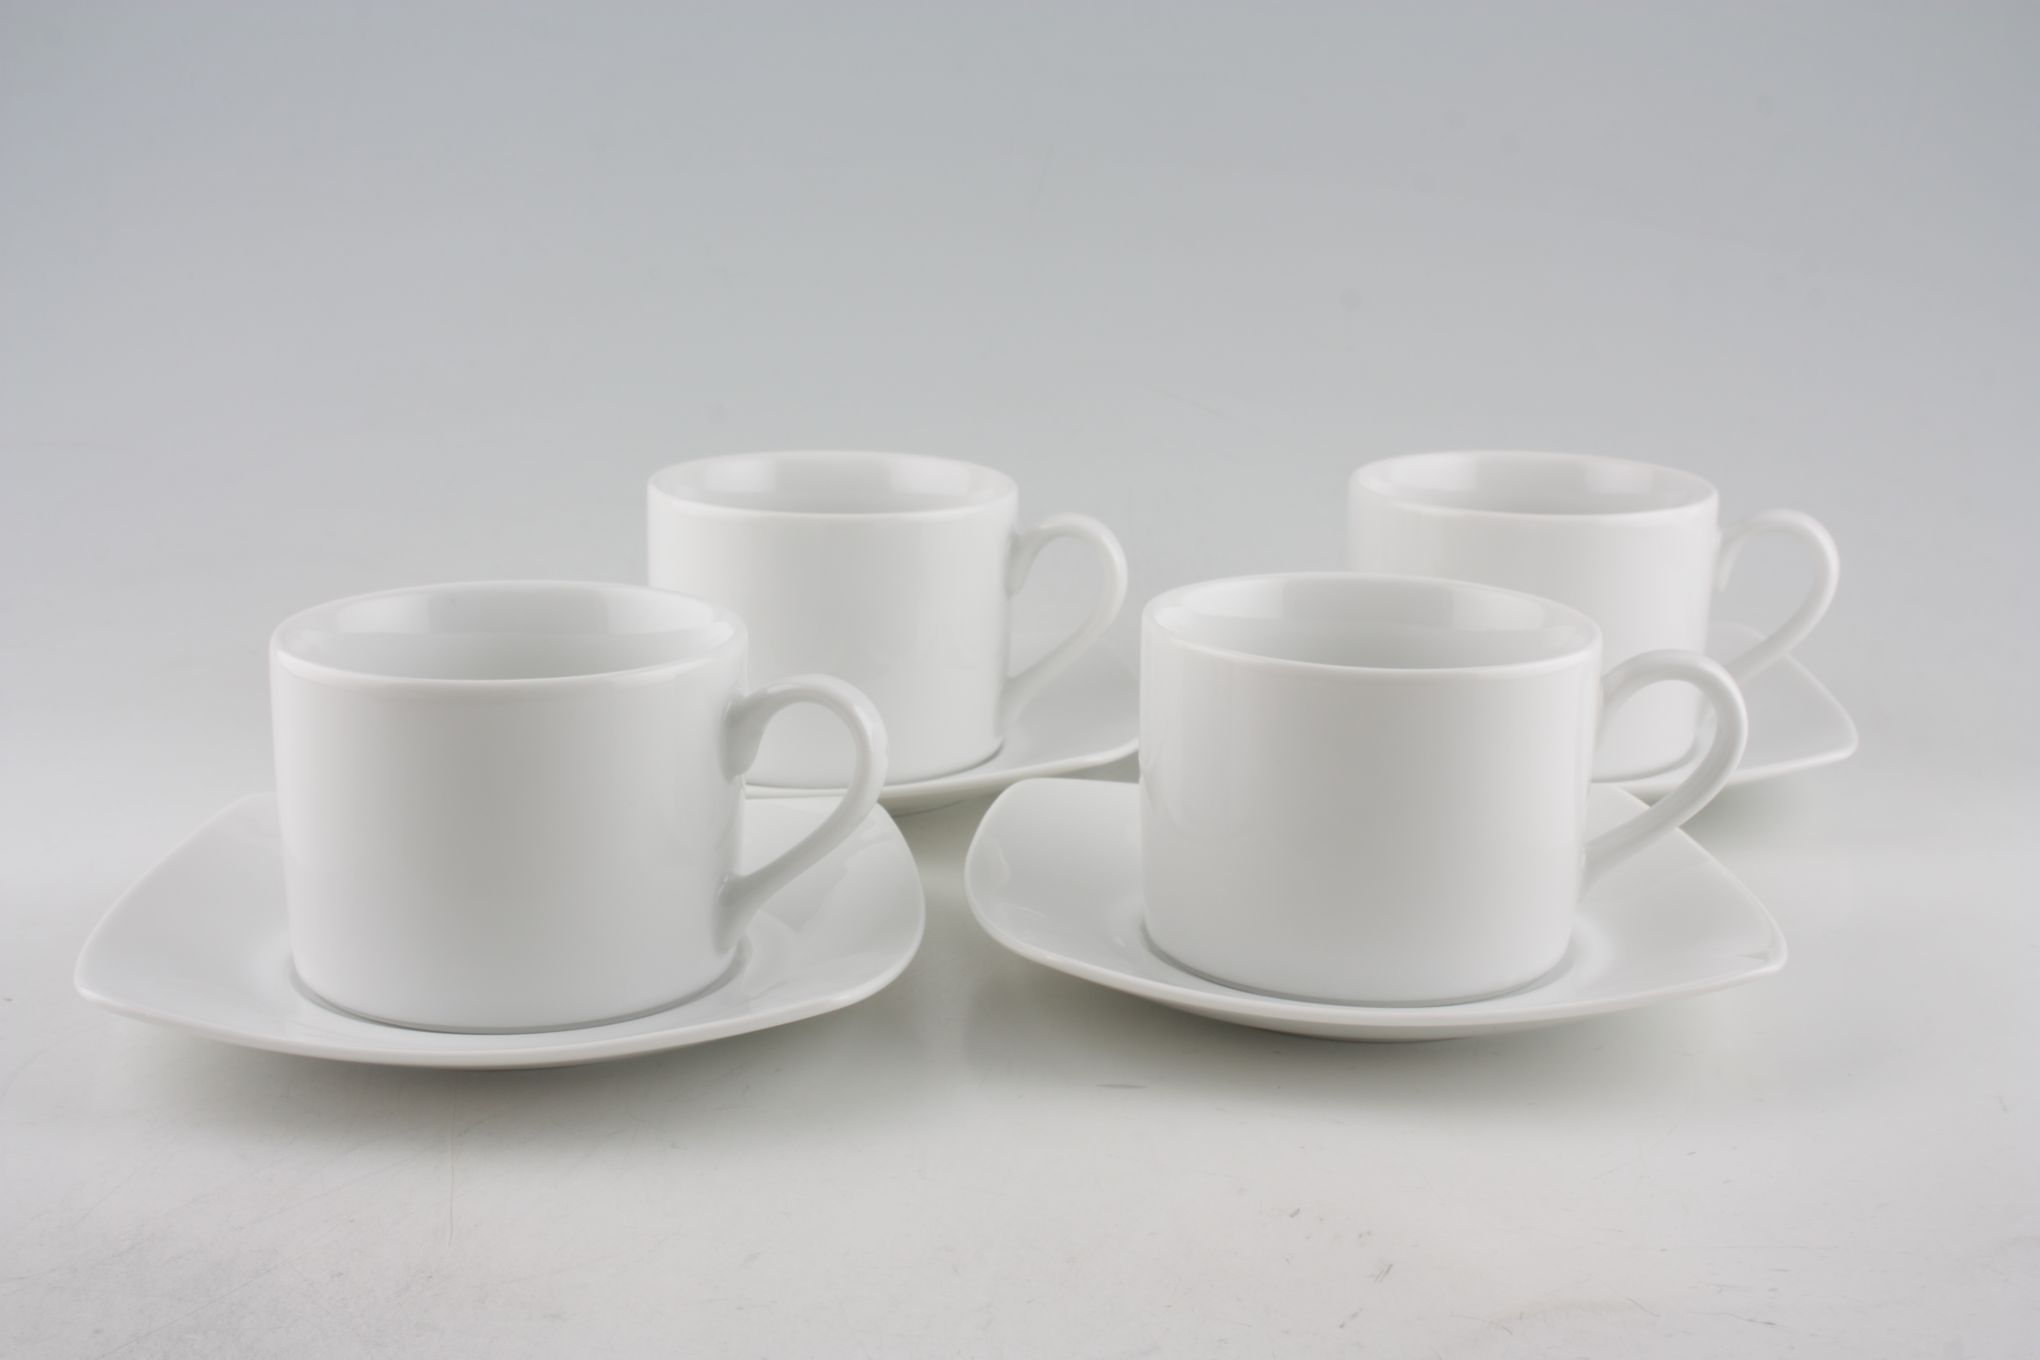 Royal Worcester Classic White - Classics Set (Tea) 4 x Straight sided Teacups and 4 x Square Saucers thumb 1